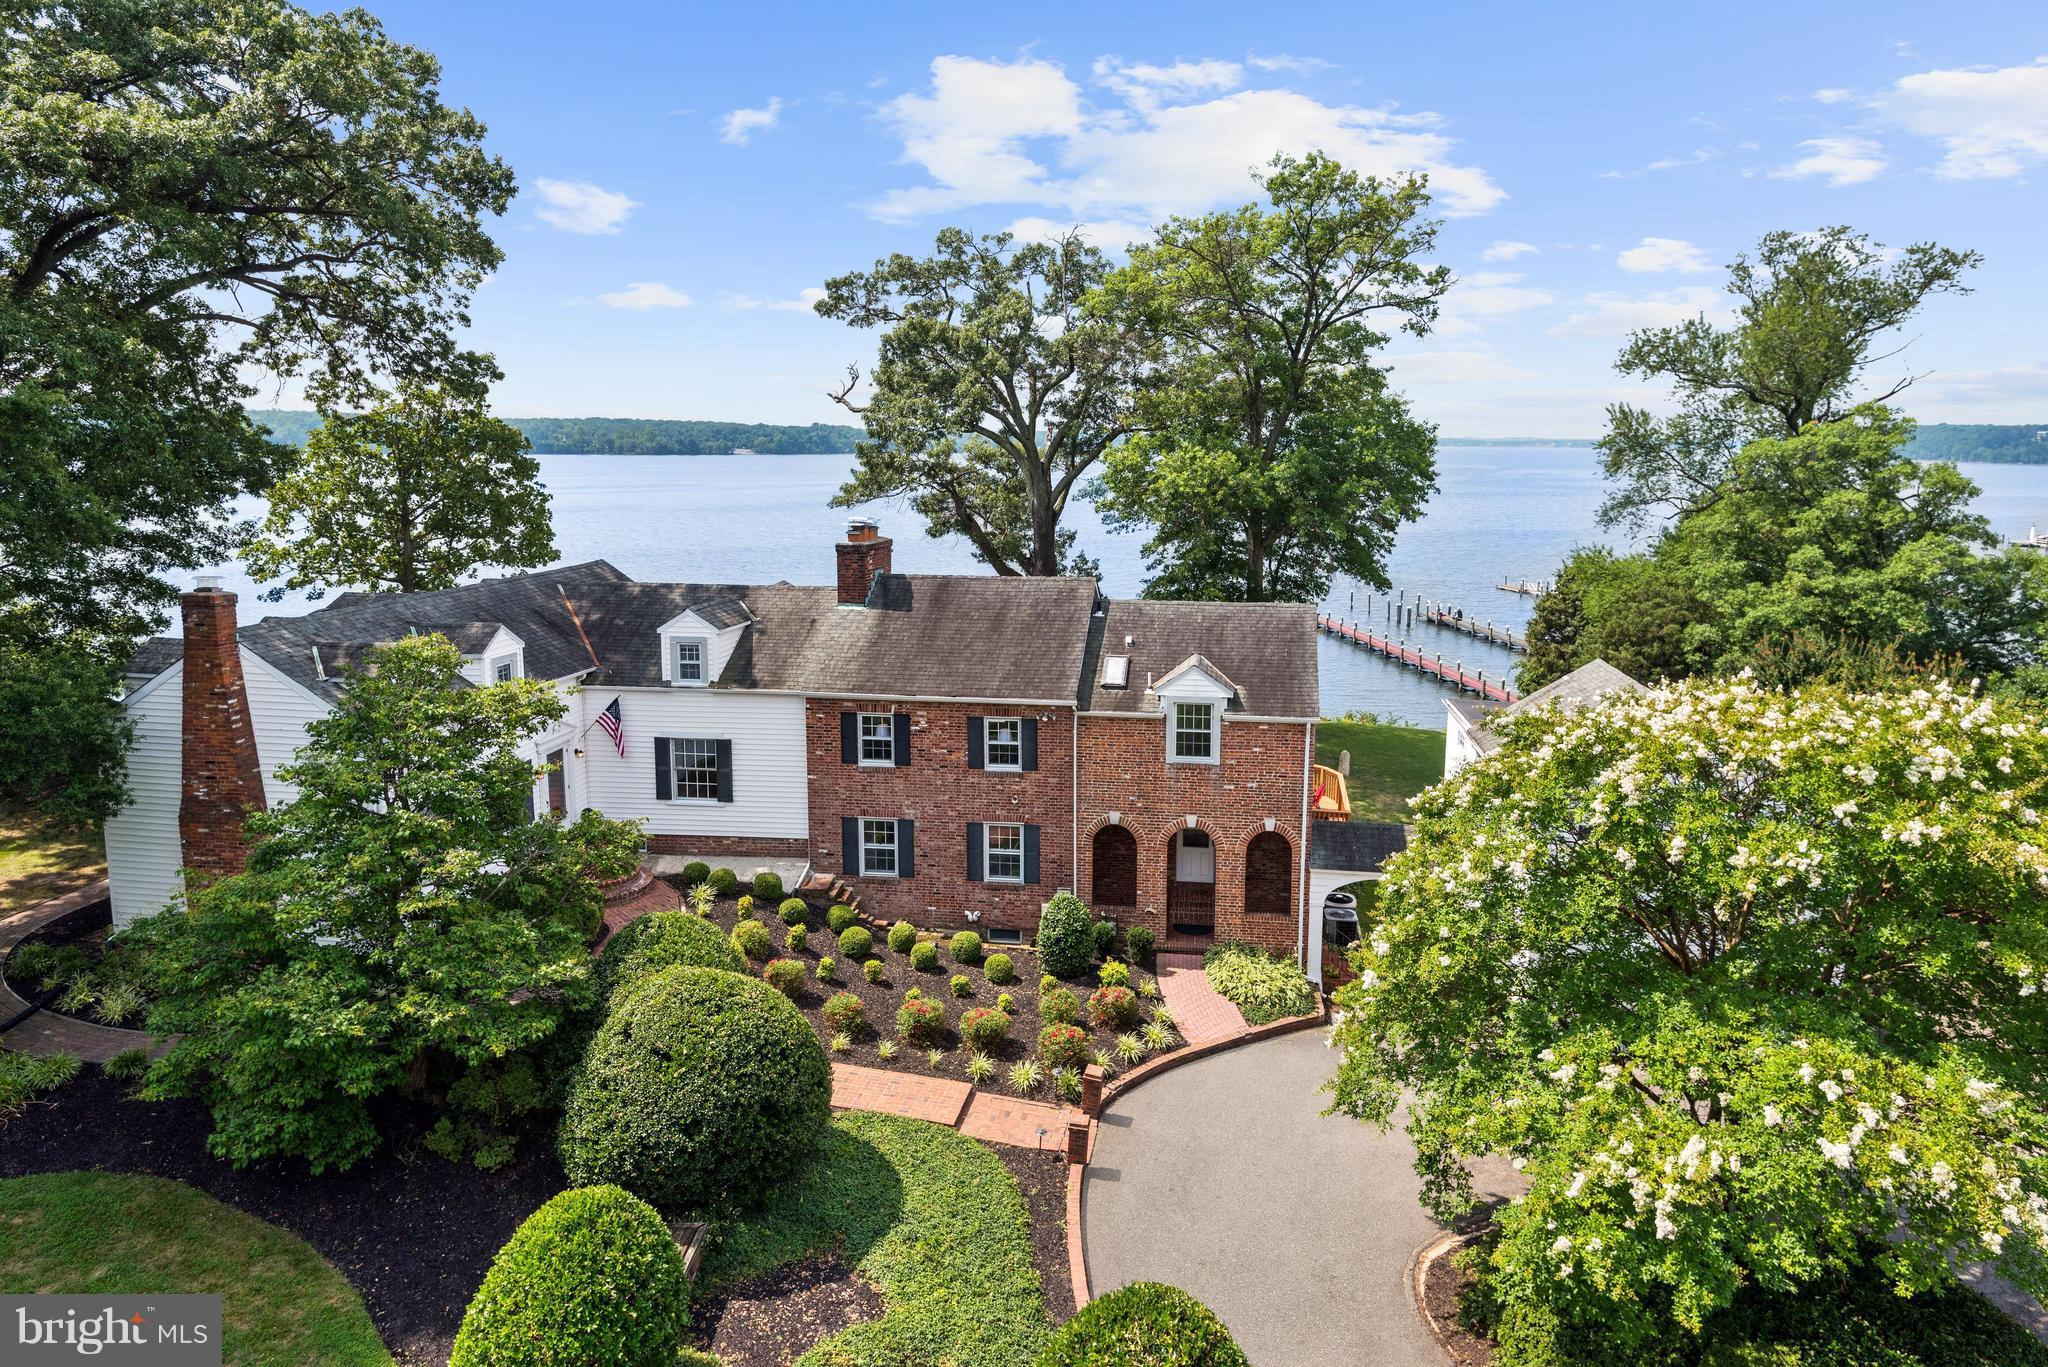 Steeped in American history, York Landing features a magnificent private home on the Potomac River. This waterfront property is nearly 2 acres, with 8-mile-wide panoramic water views. Finished on 4 levels and retaining period charm, the house is updated and lives in a comfortable way. The 2 master suites, 3 fireplaces, 3-car garage, private dock and 2 guest houses complete this welcoming estate.